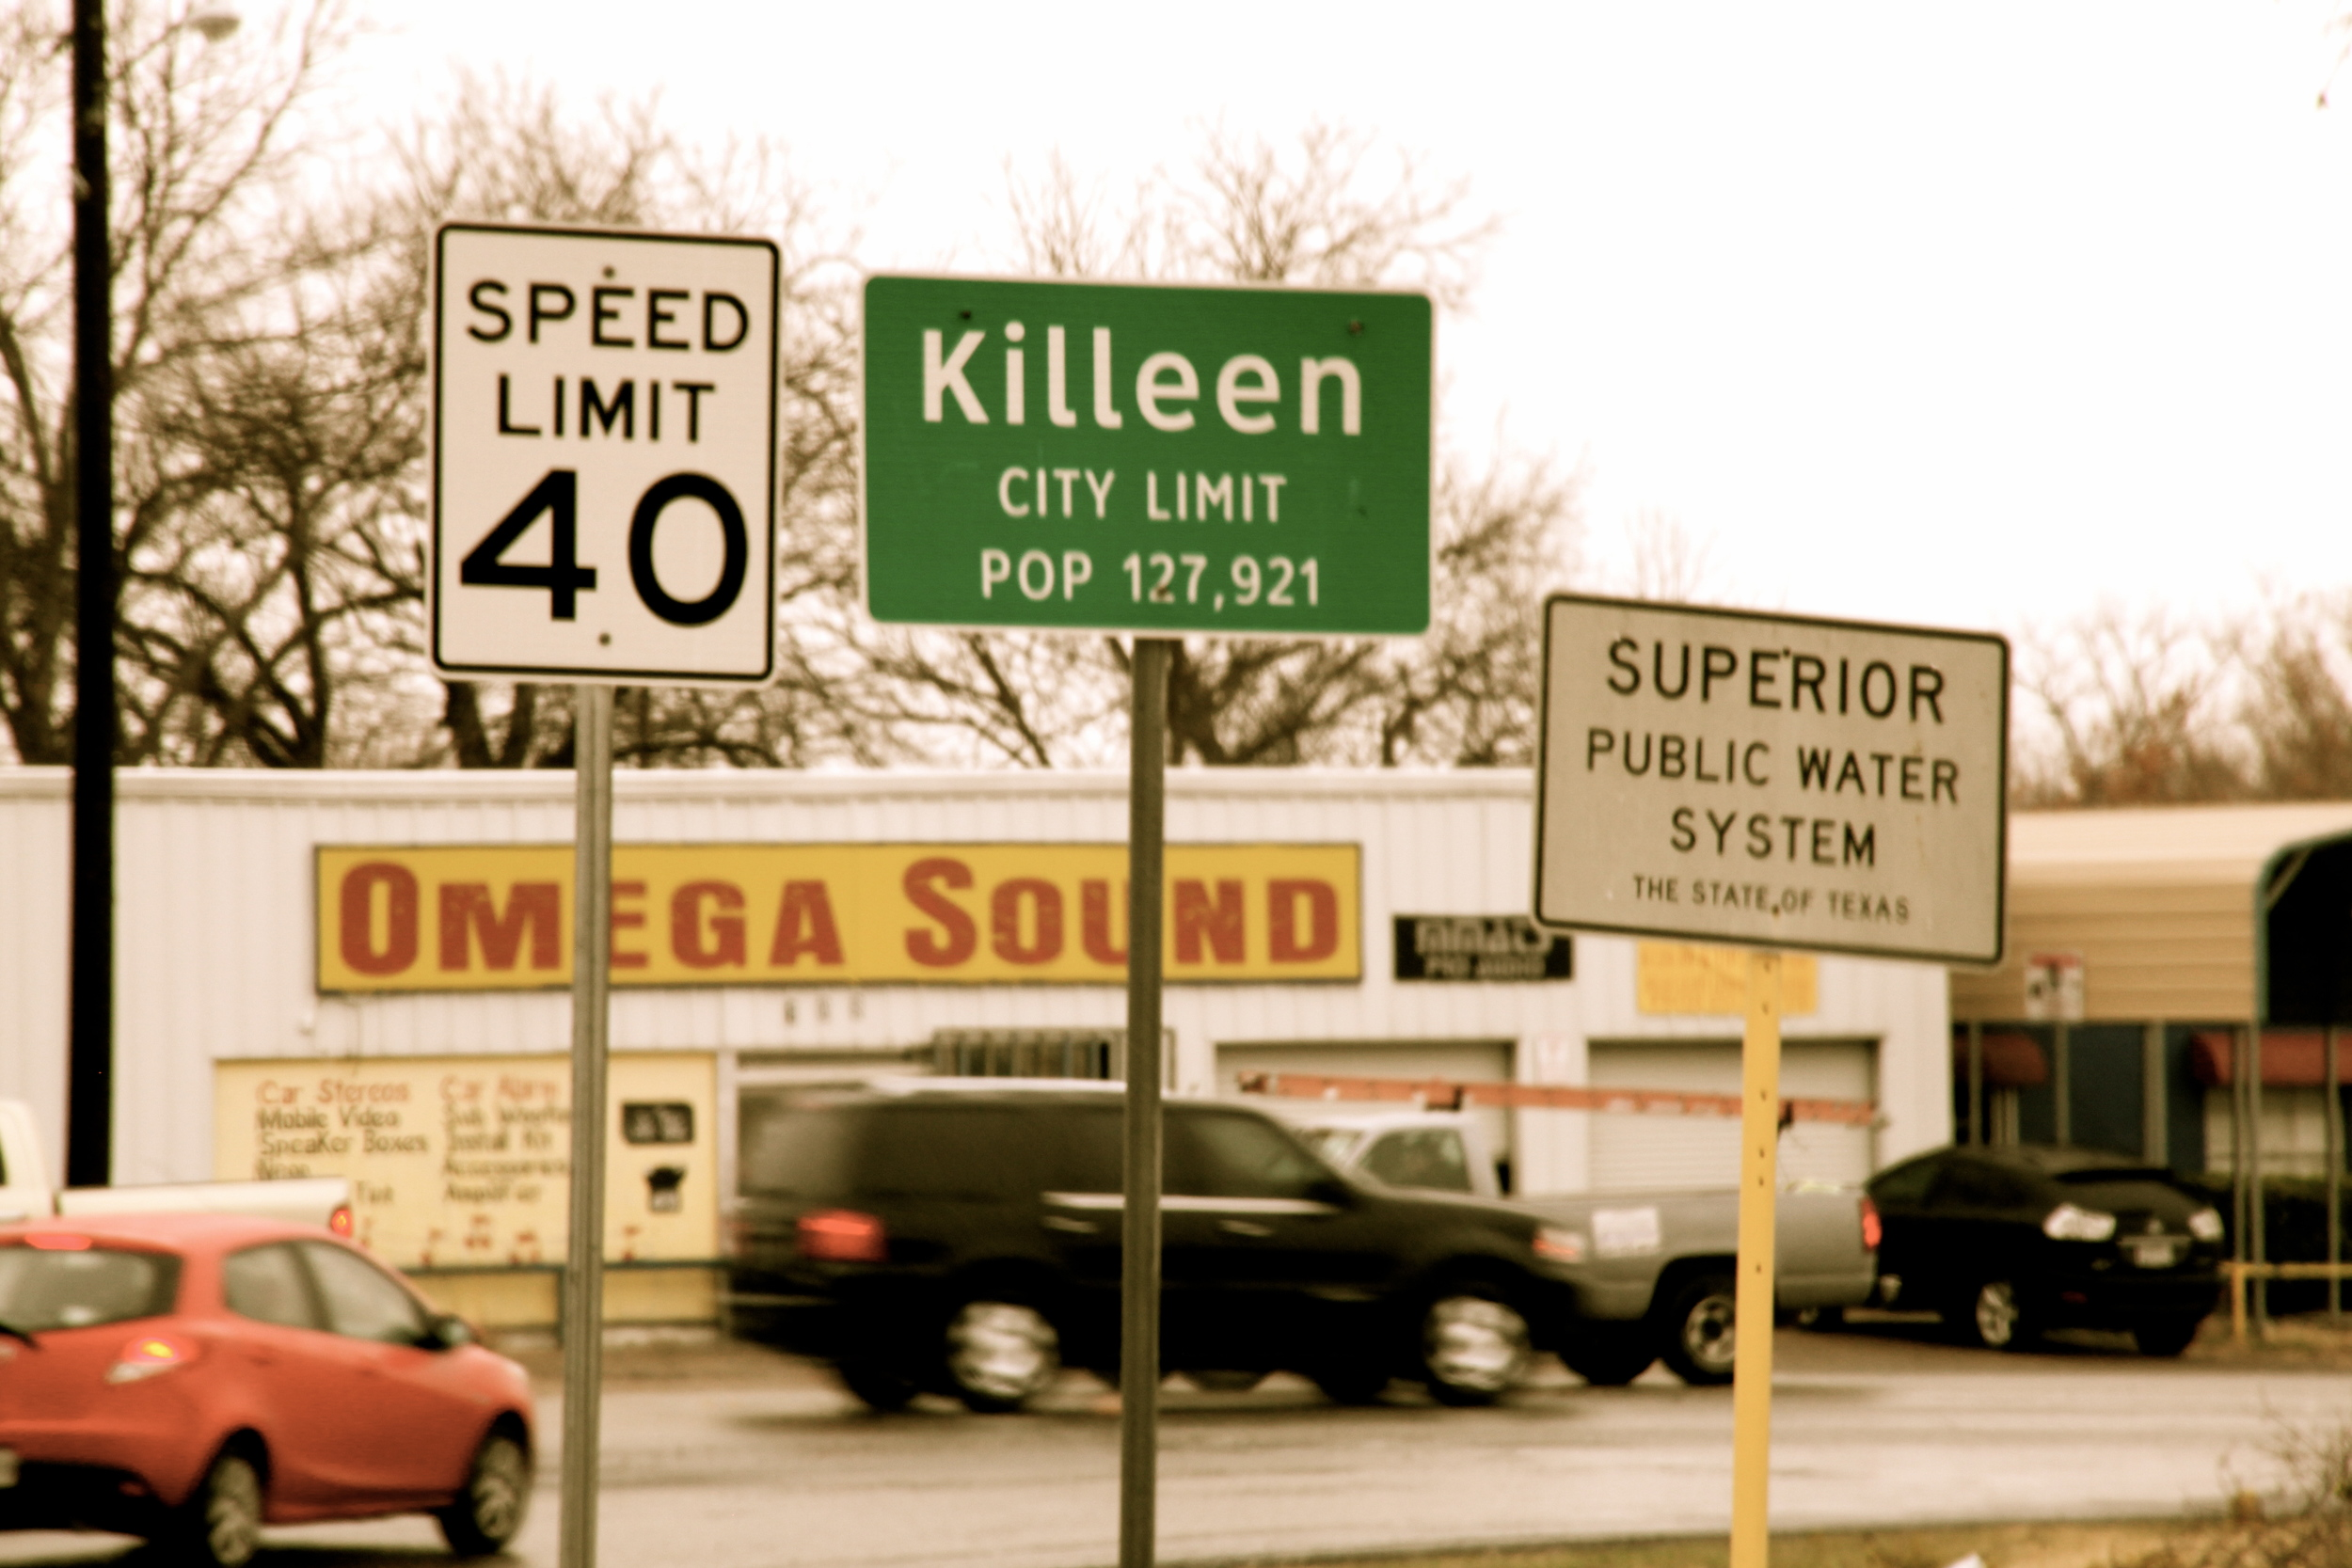 Killeen, Texas (home of the largest Army Installation in the U.S. - Fort Hood Military Base)